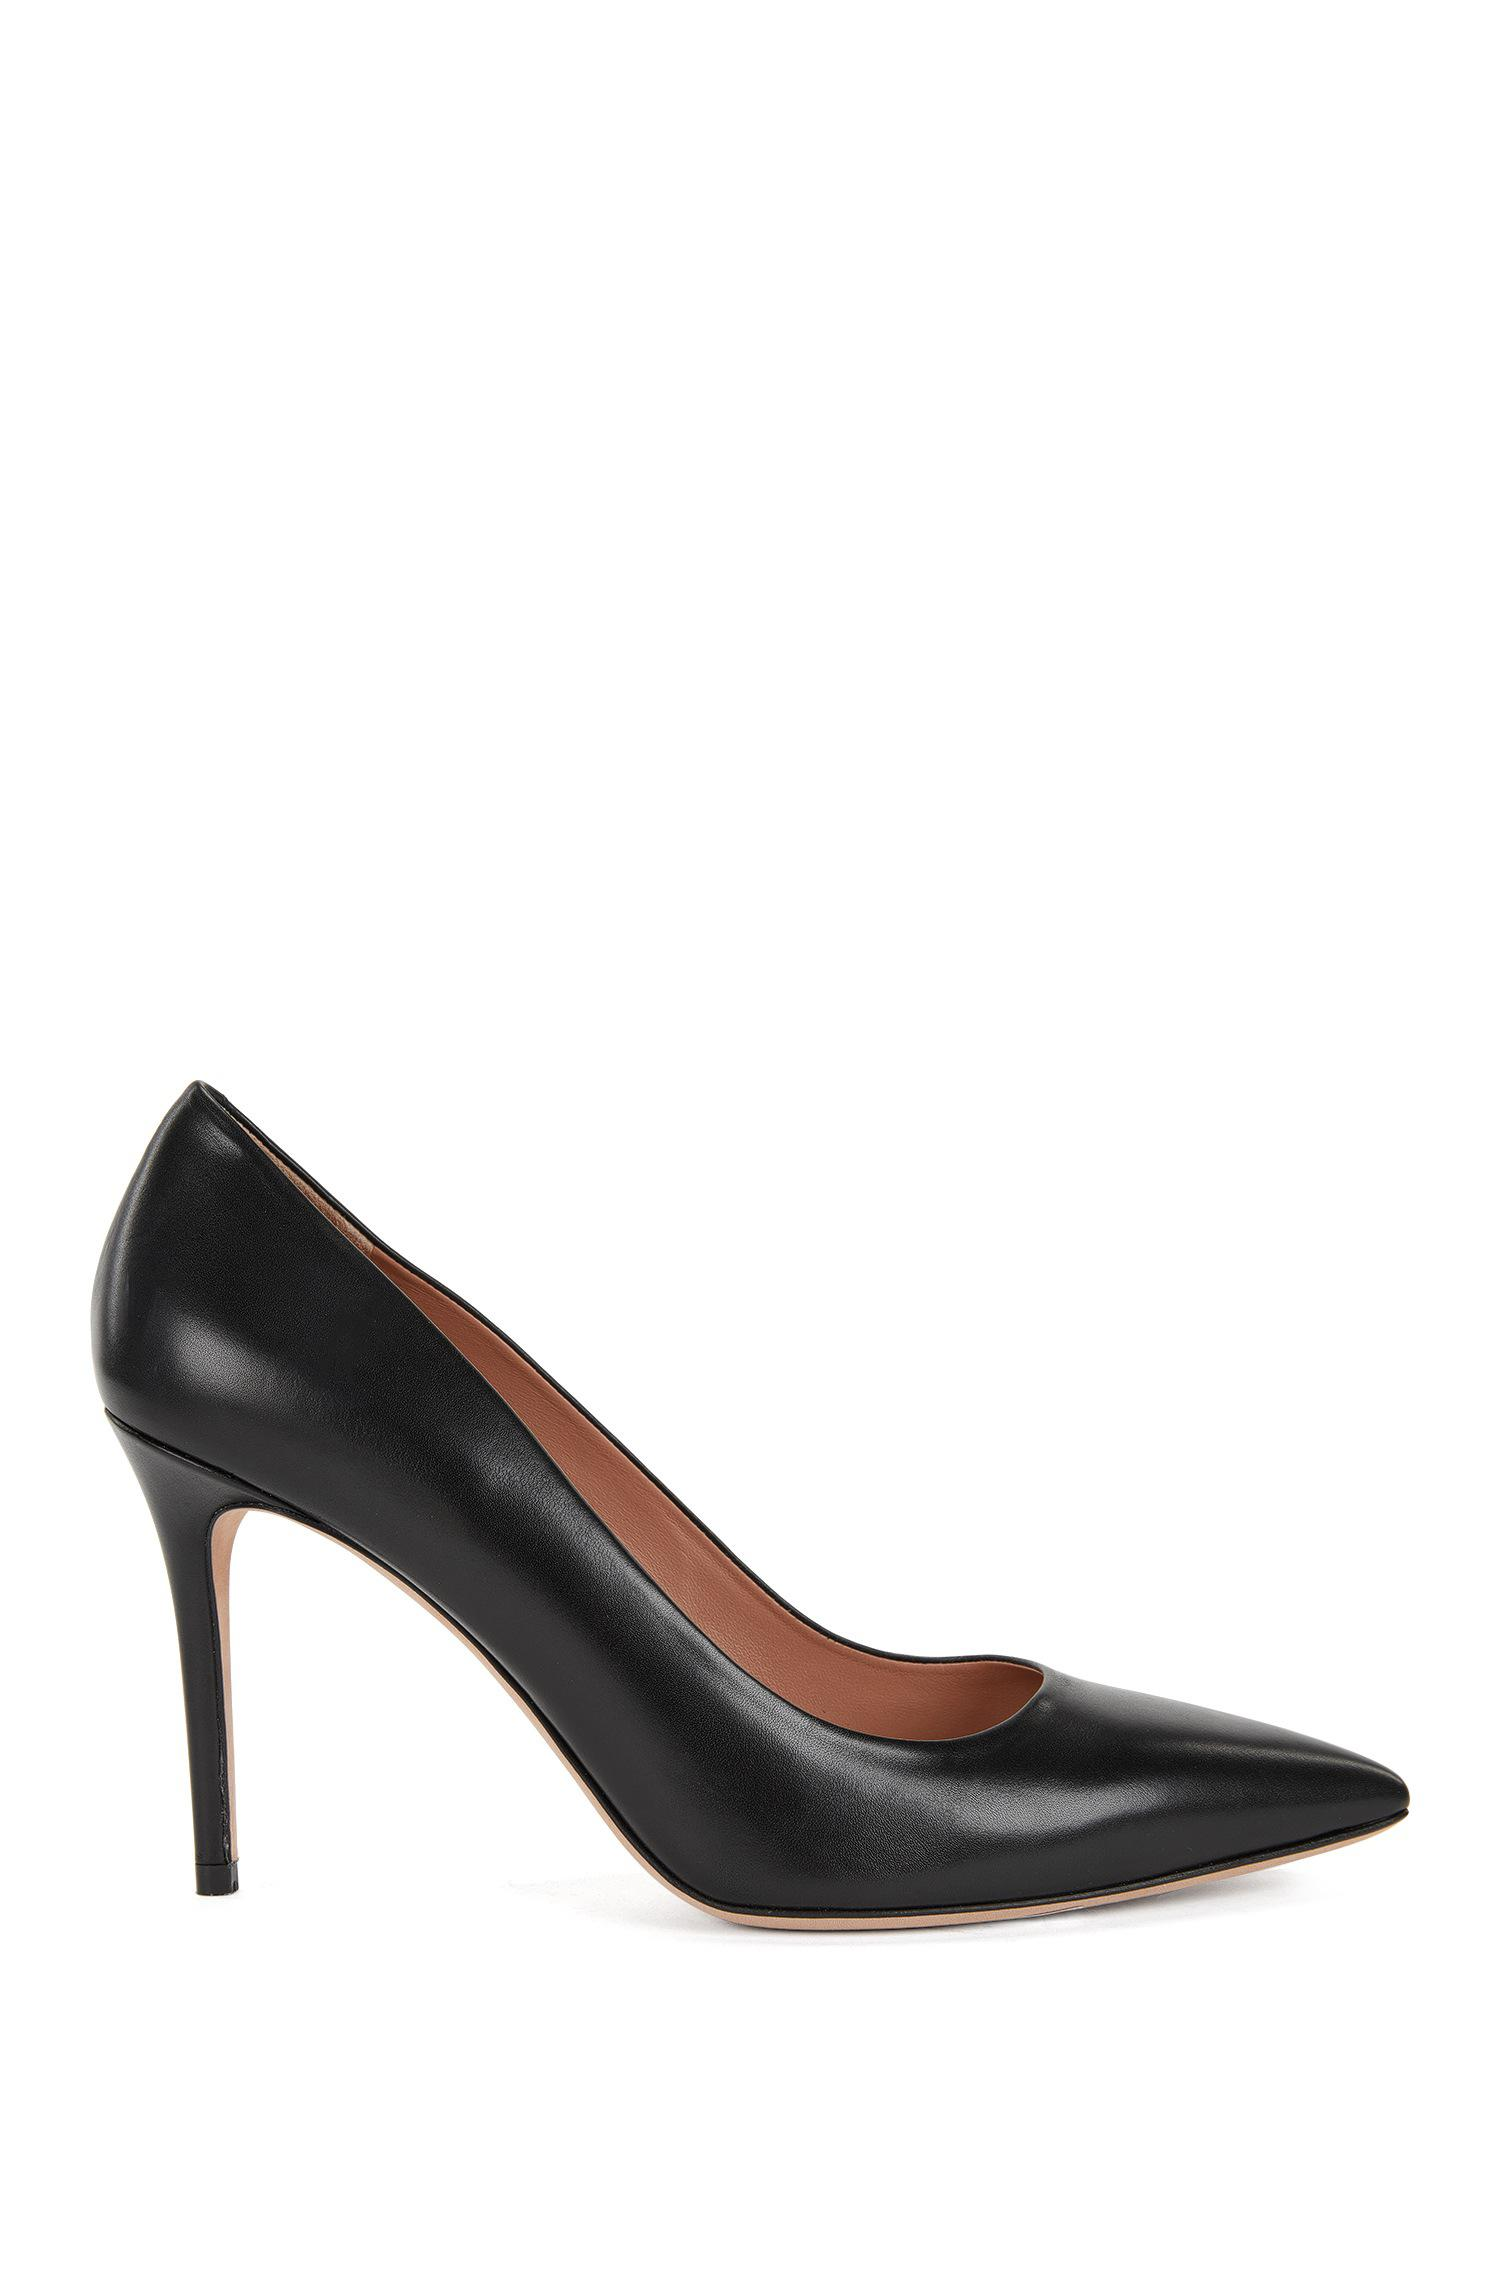 d67a3dc3cab BOSS Pointed-toe Court Shoes In Italian Leather in Black - Lyst